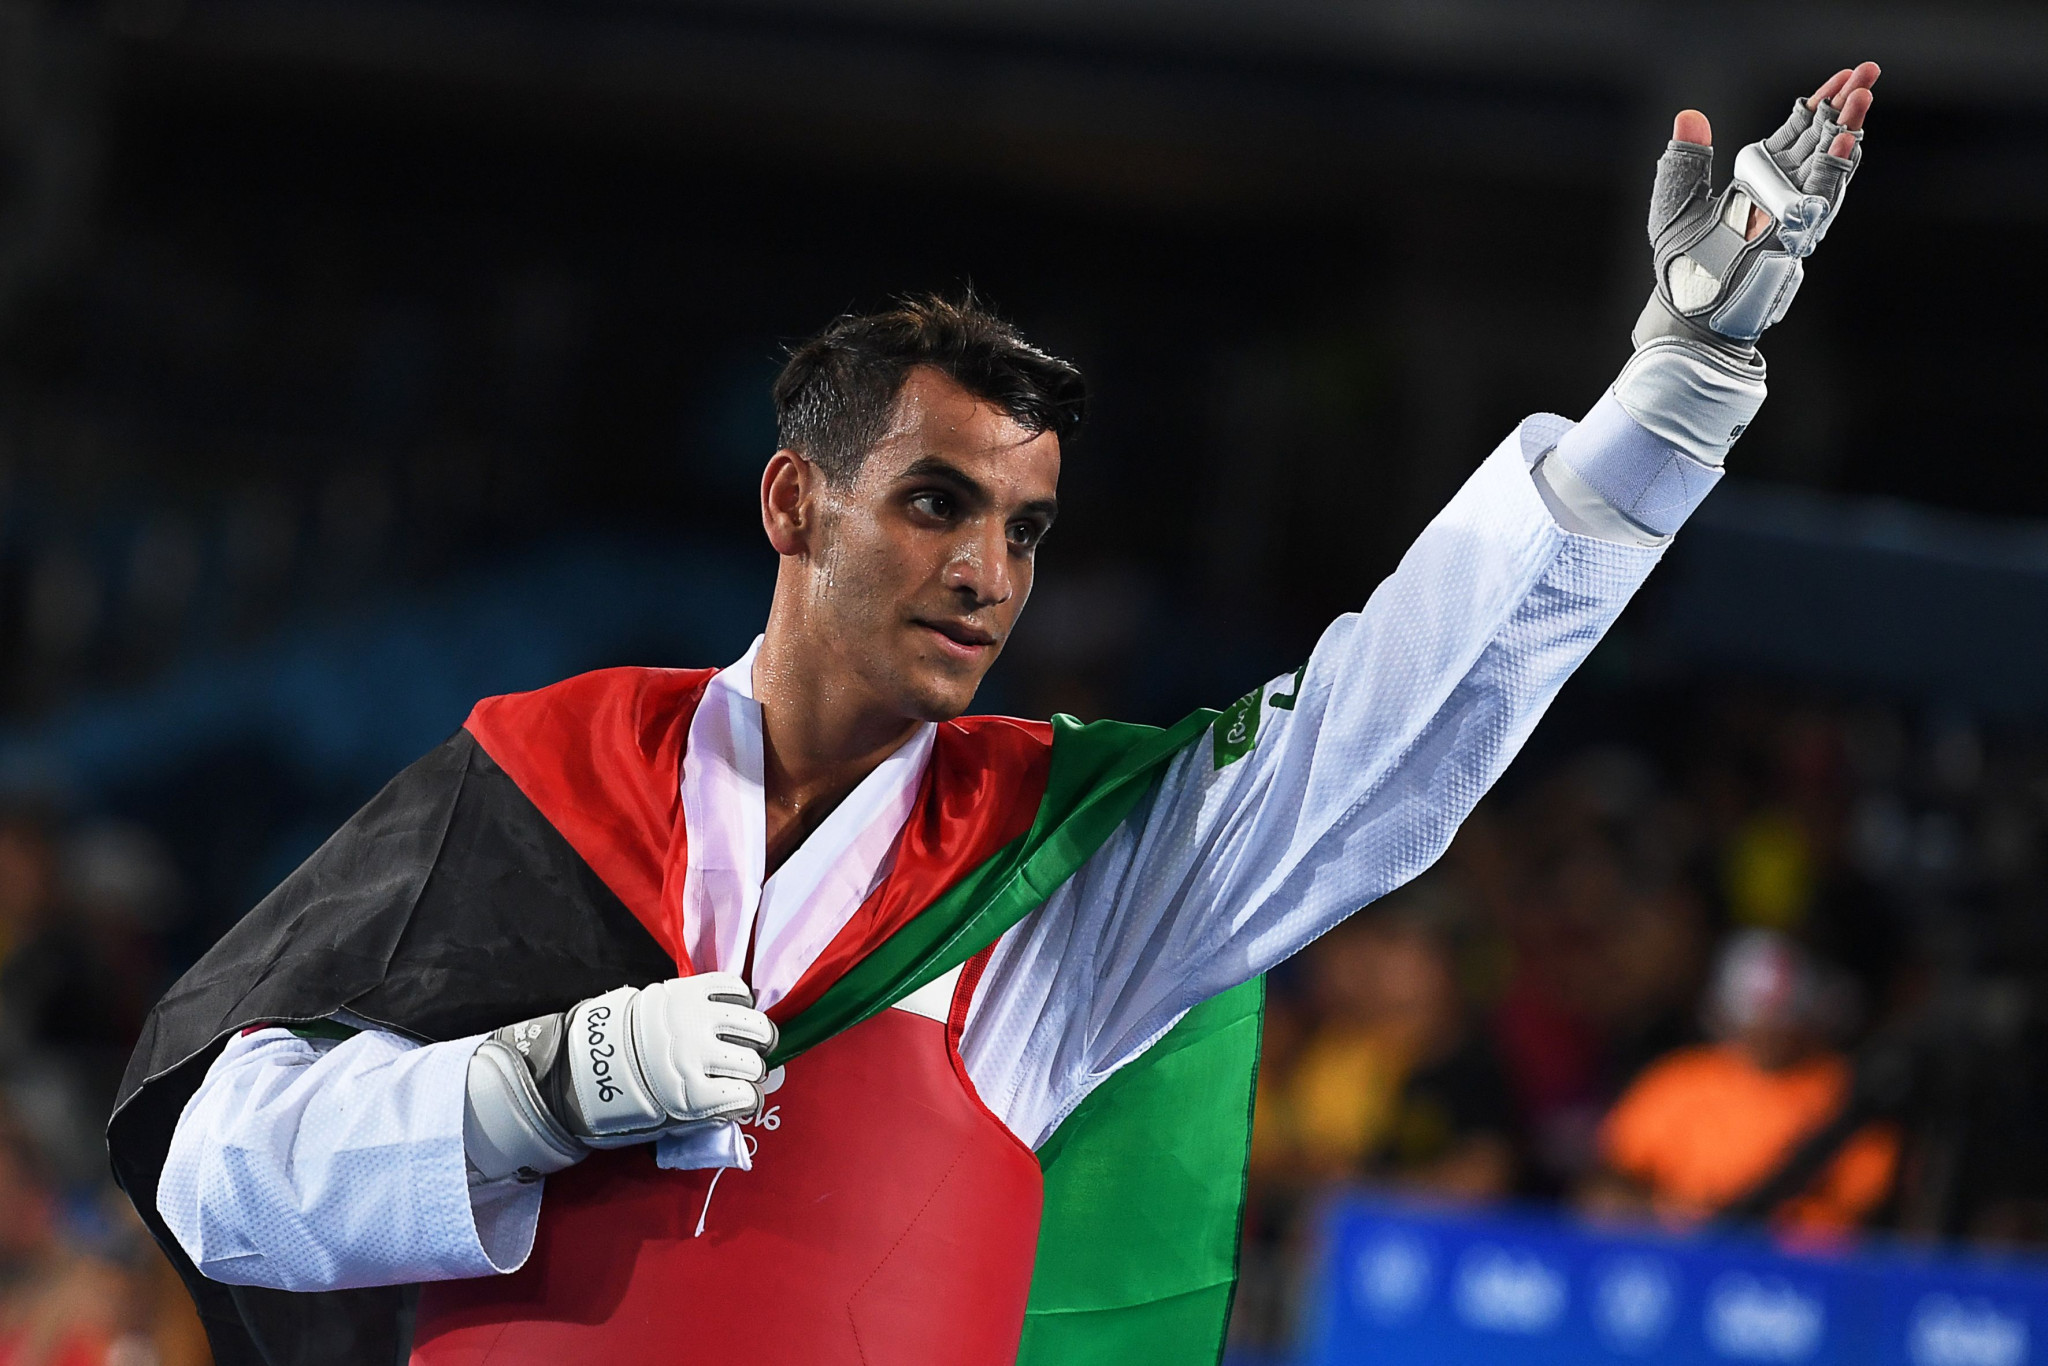 Ahmad Abu Ghaush became Jordan's first Olympic champion at Rio 2016 ©Getty Images